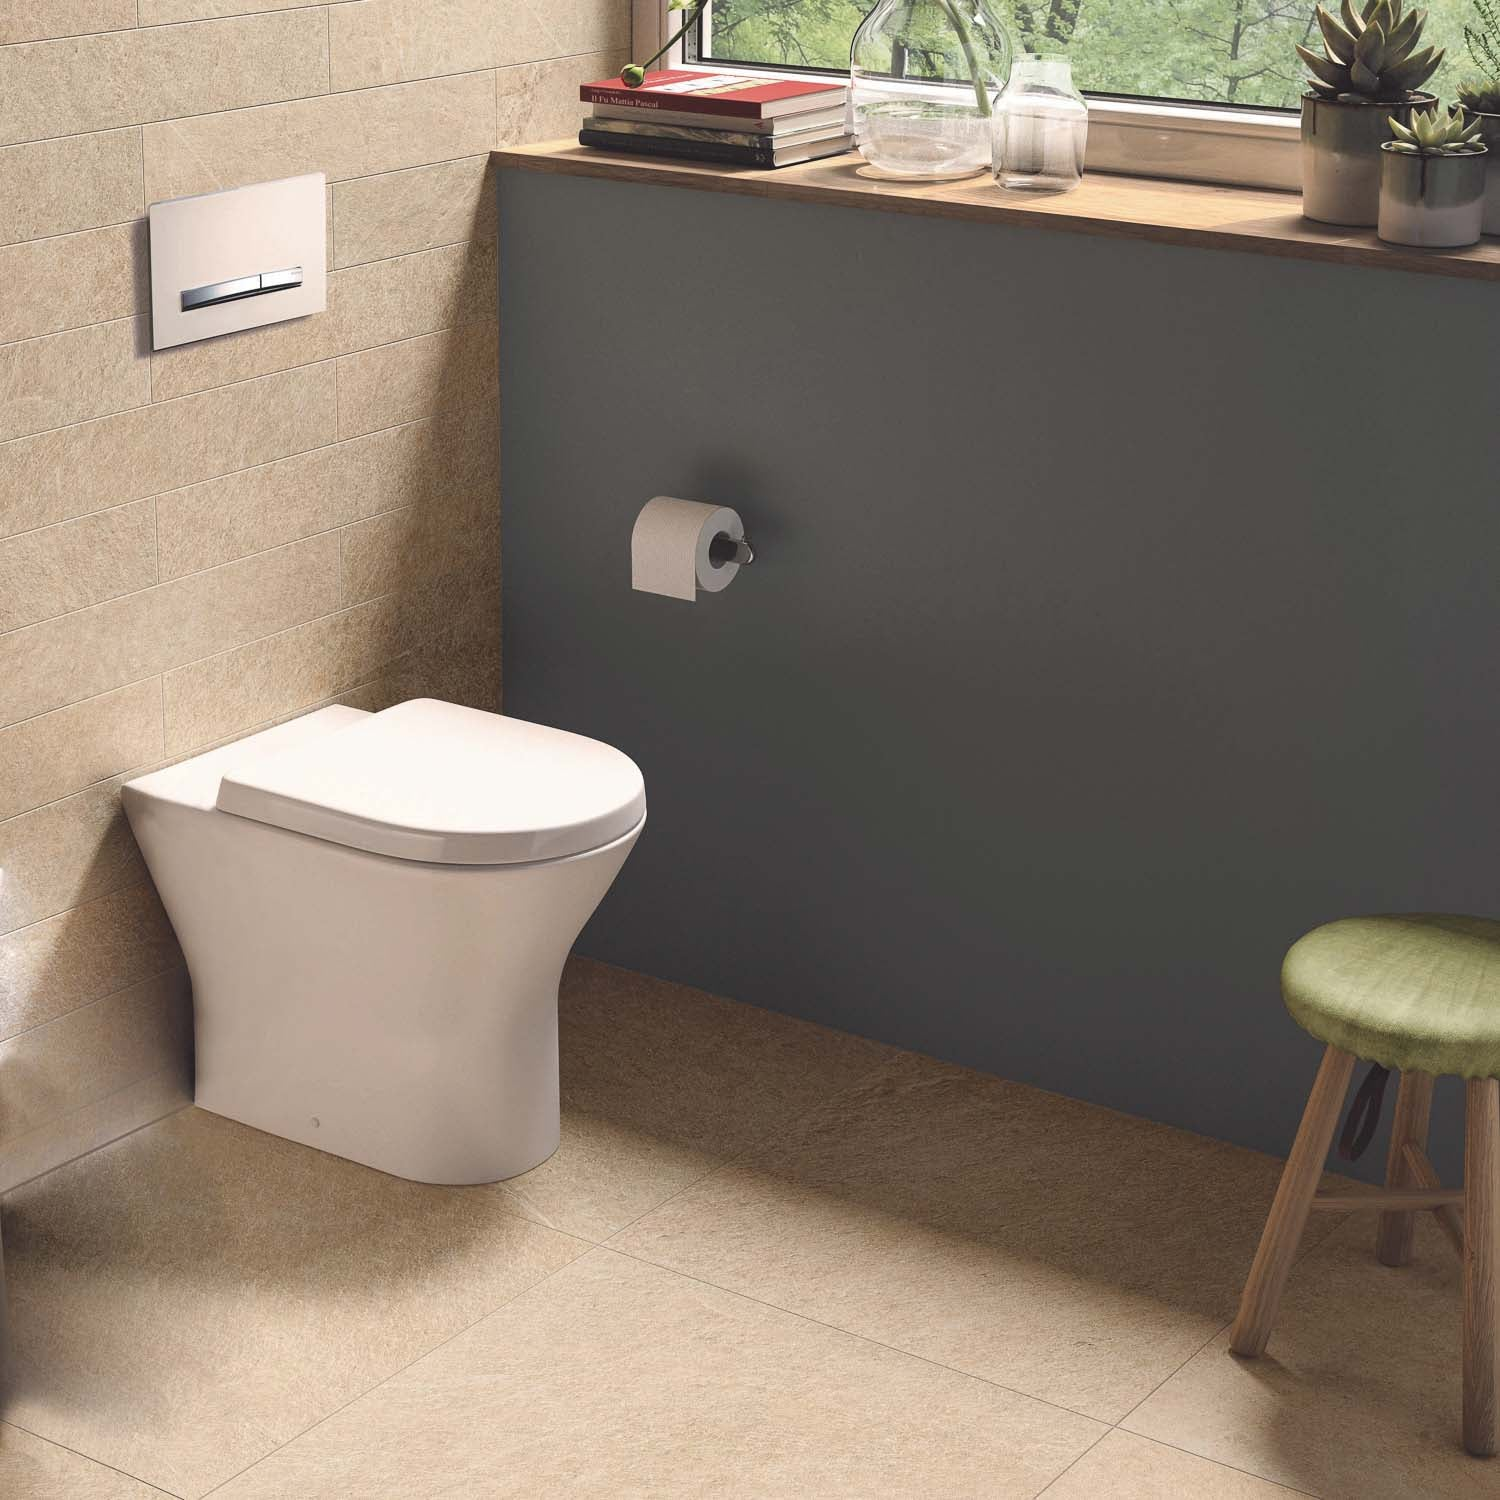 450mm Vesta Comfort Height Back to Wall Toilet without a seat and cover lifestyle image